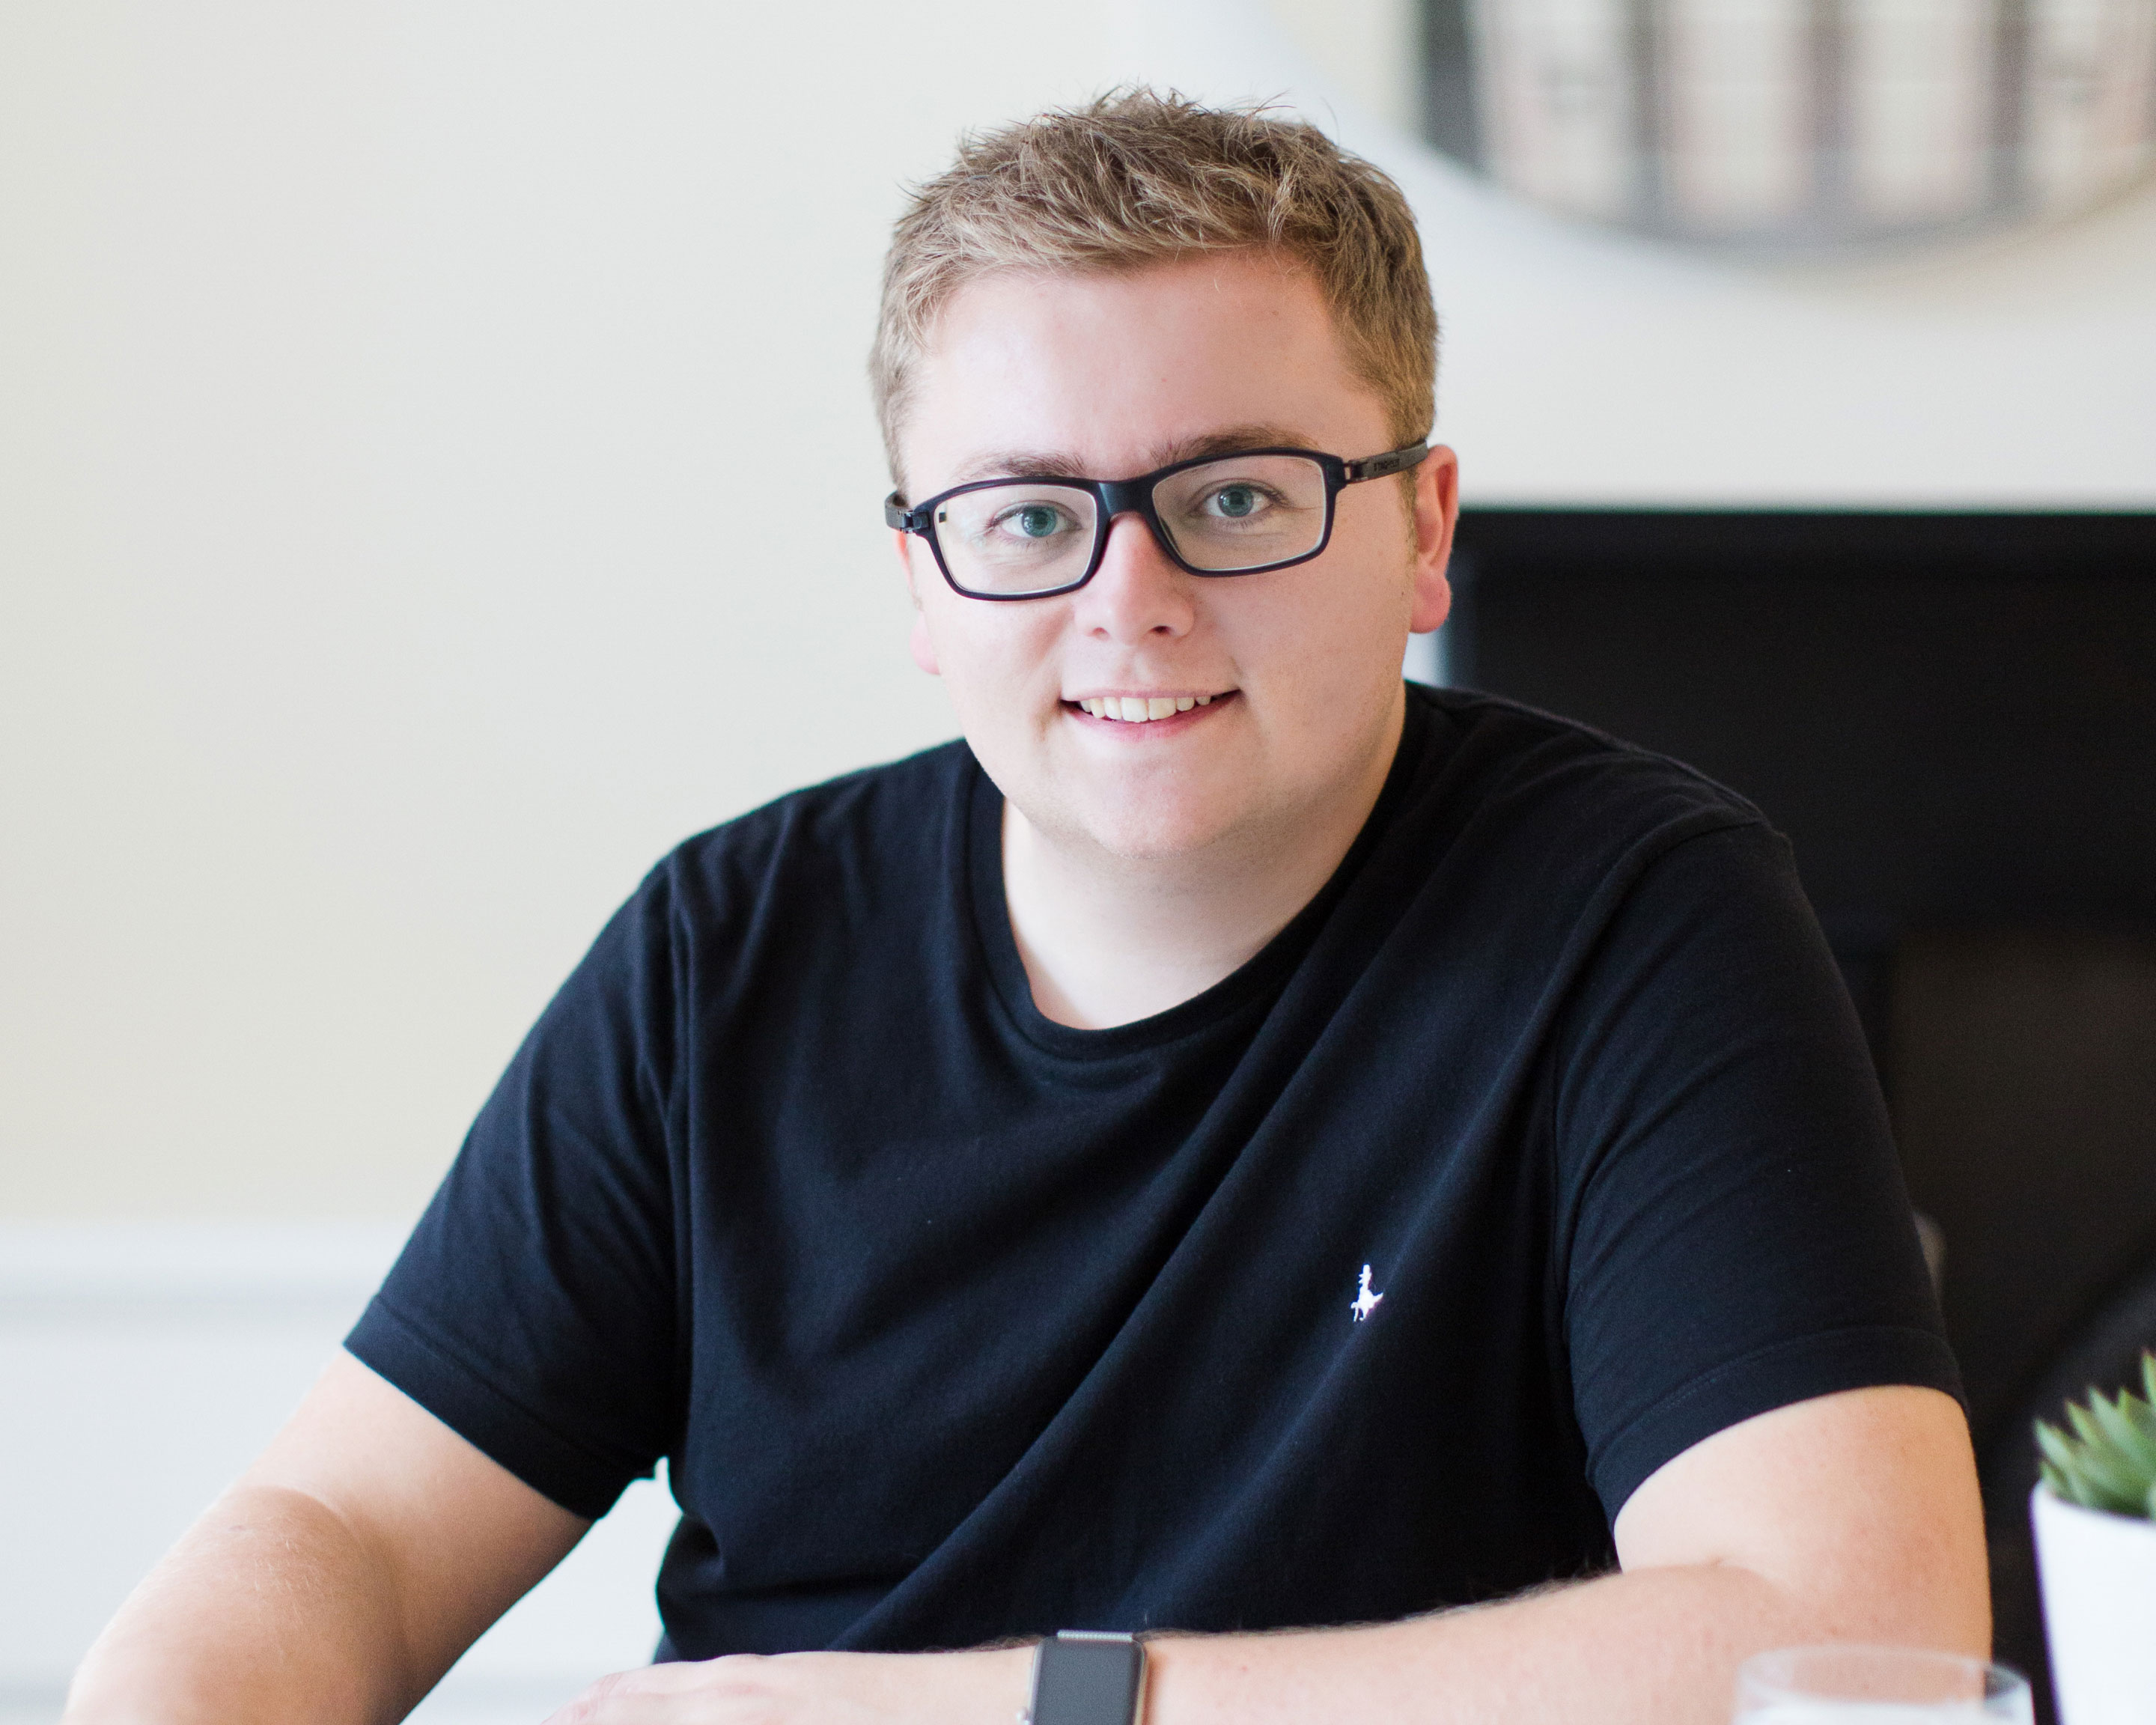 Jack Watkins in black glasses and black t-shirt smiling at the camera